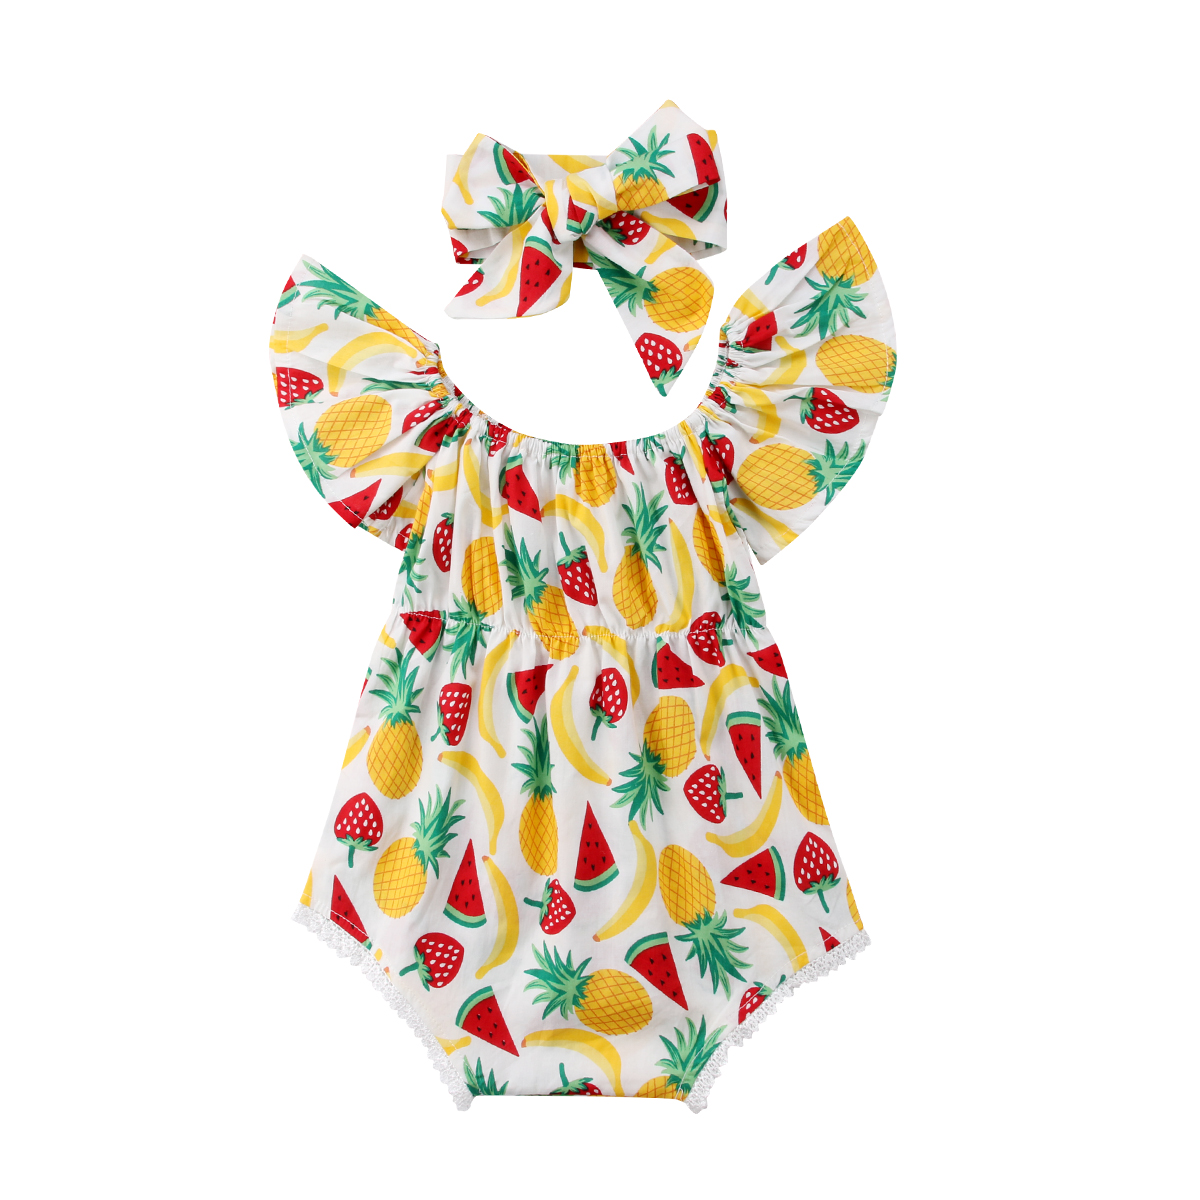 2PCS Summer Baby Girls Clothes Pineapple Strawberry Fruit Print Ruffle Sleeveless   Romper   Headband Outfits